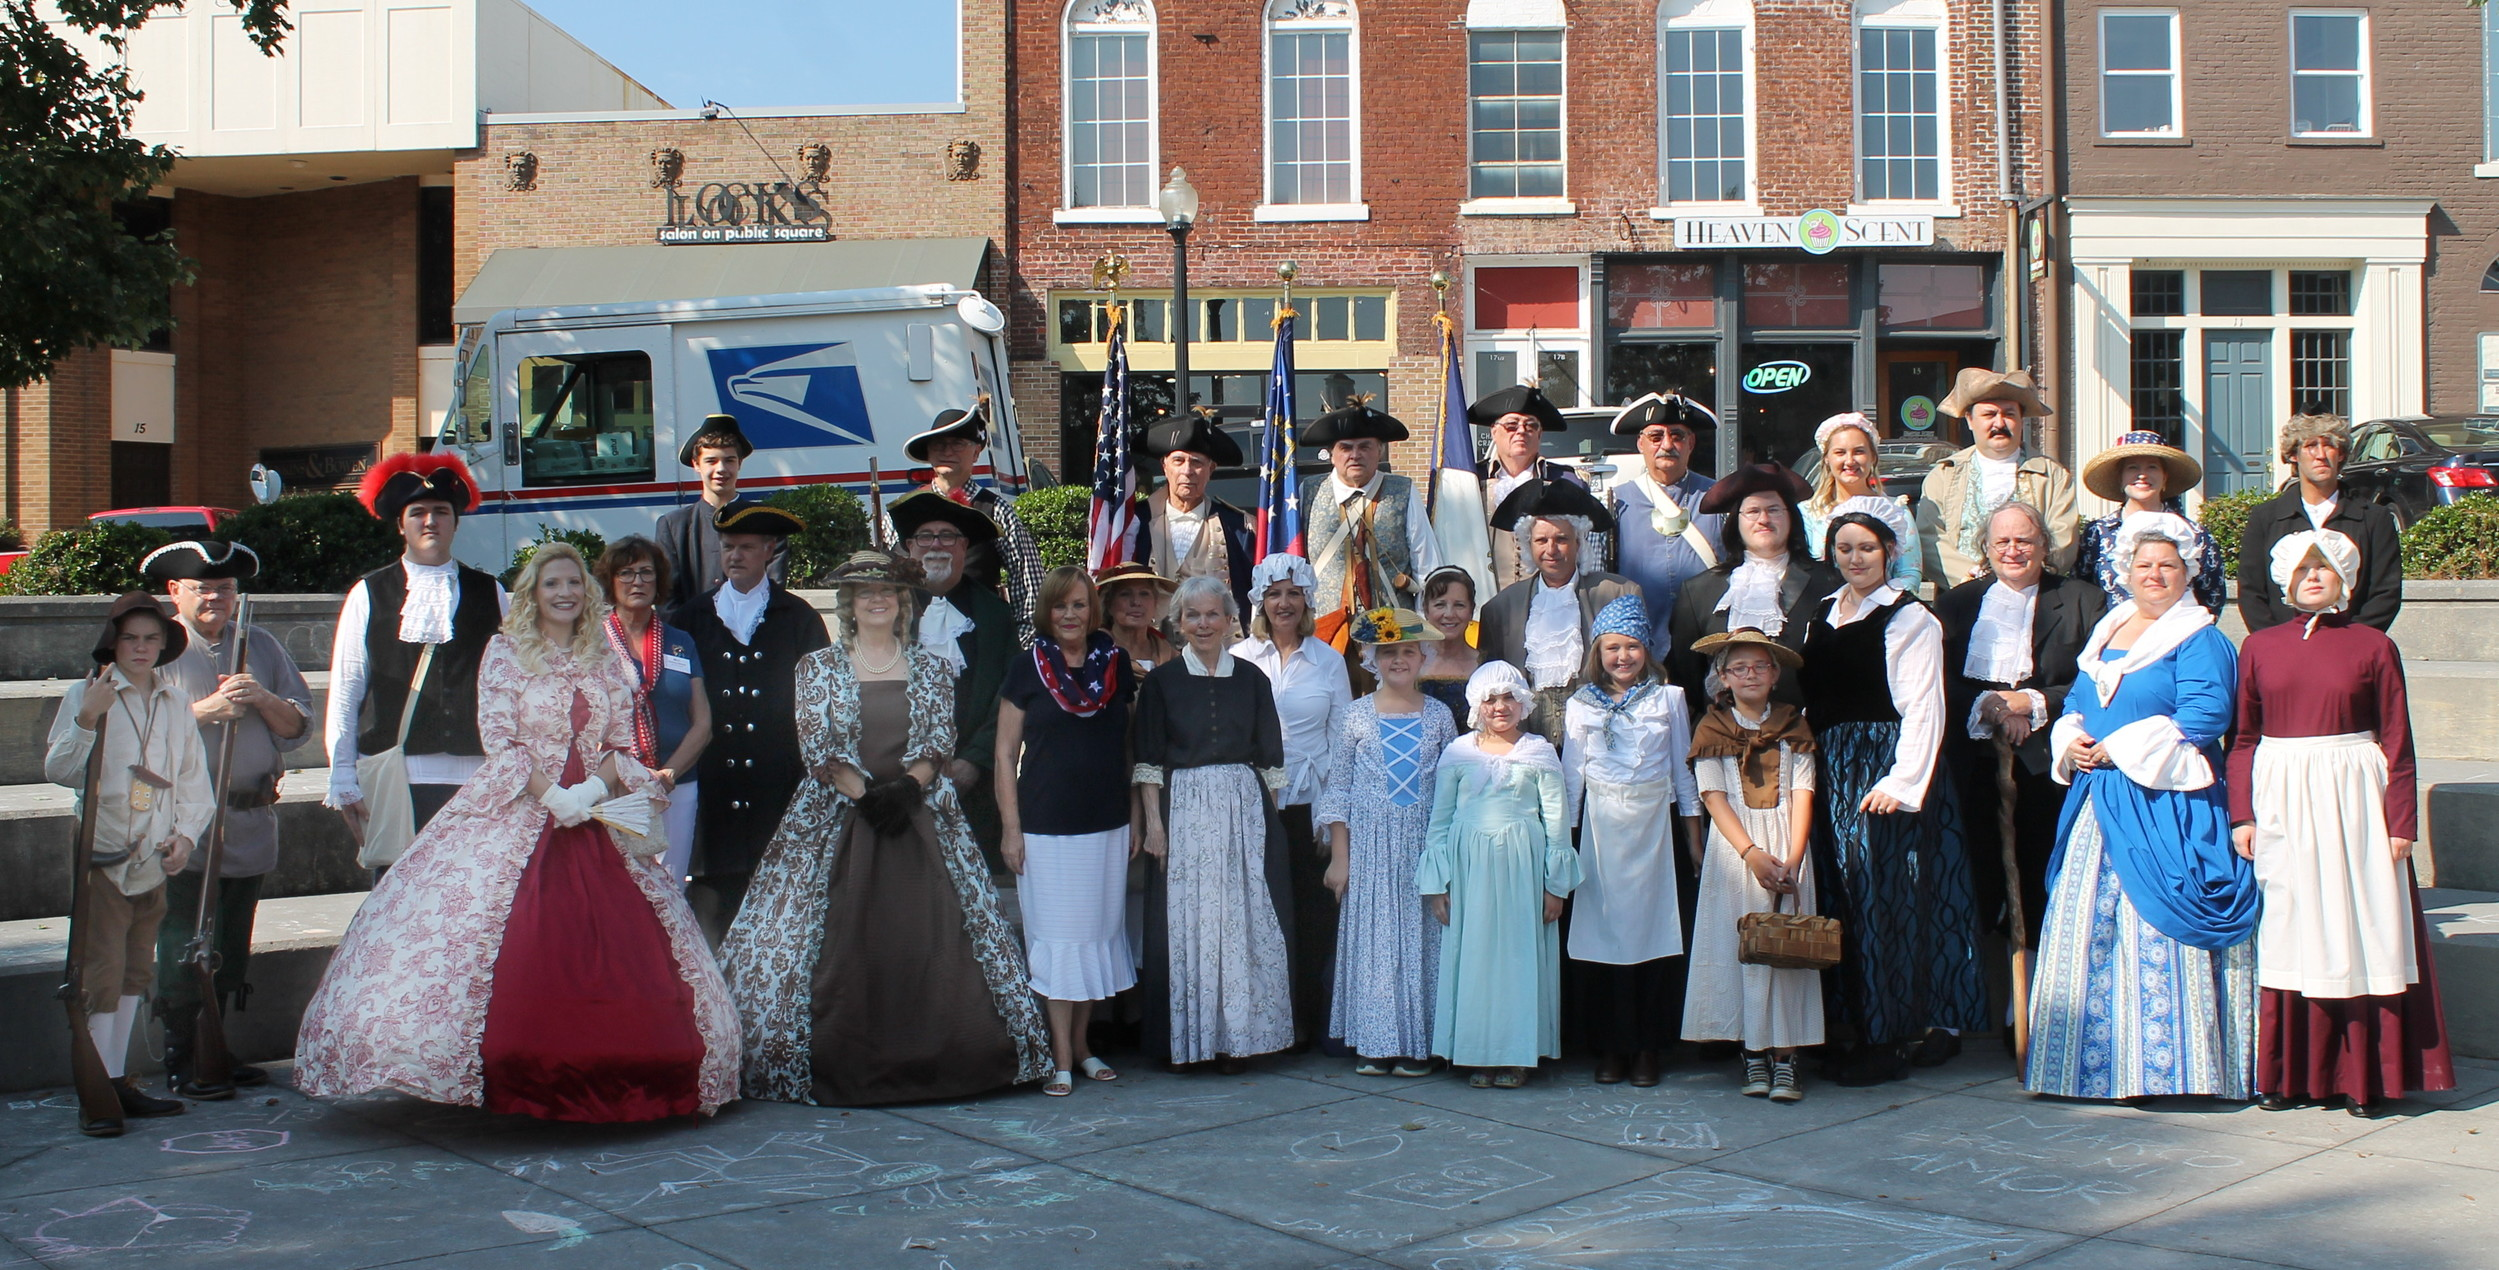 Actors portray historical figures from 1776 during last year's Constitution Week celebration in downtown Cartersville.